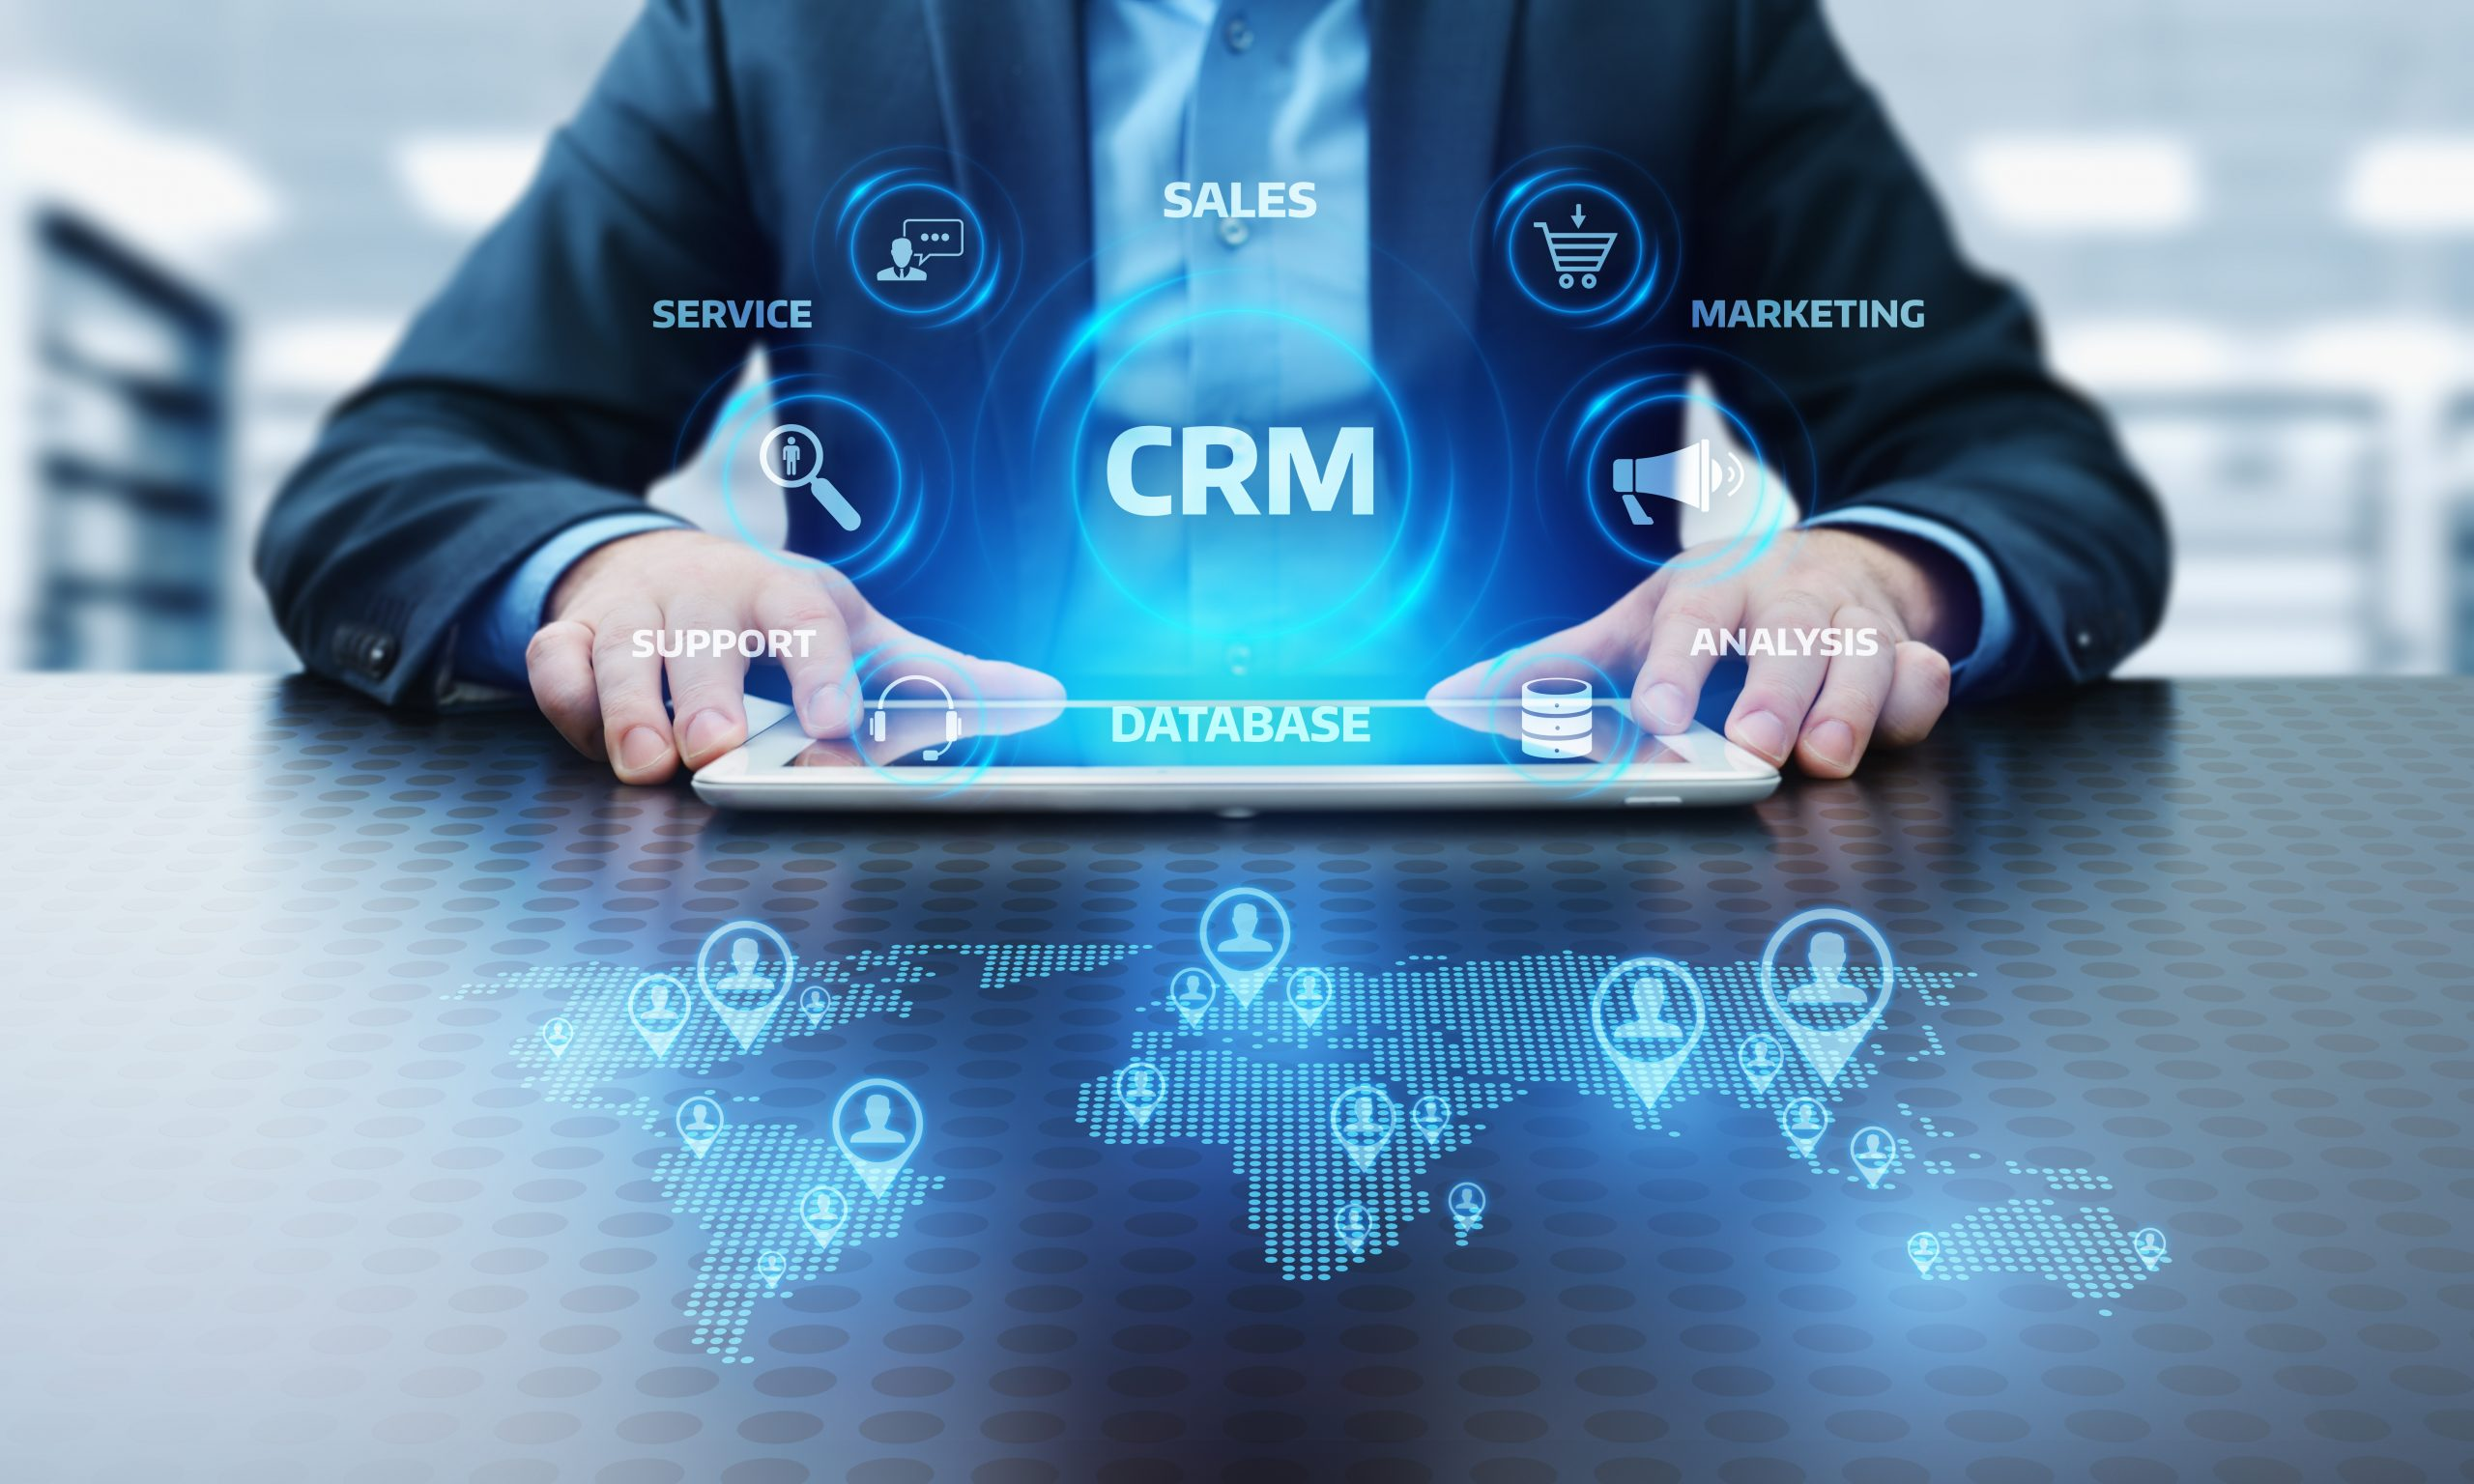 Benefits of CRM Software for Small Businesses